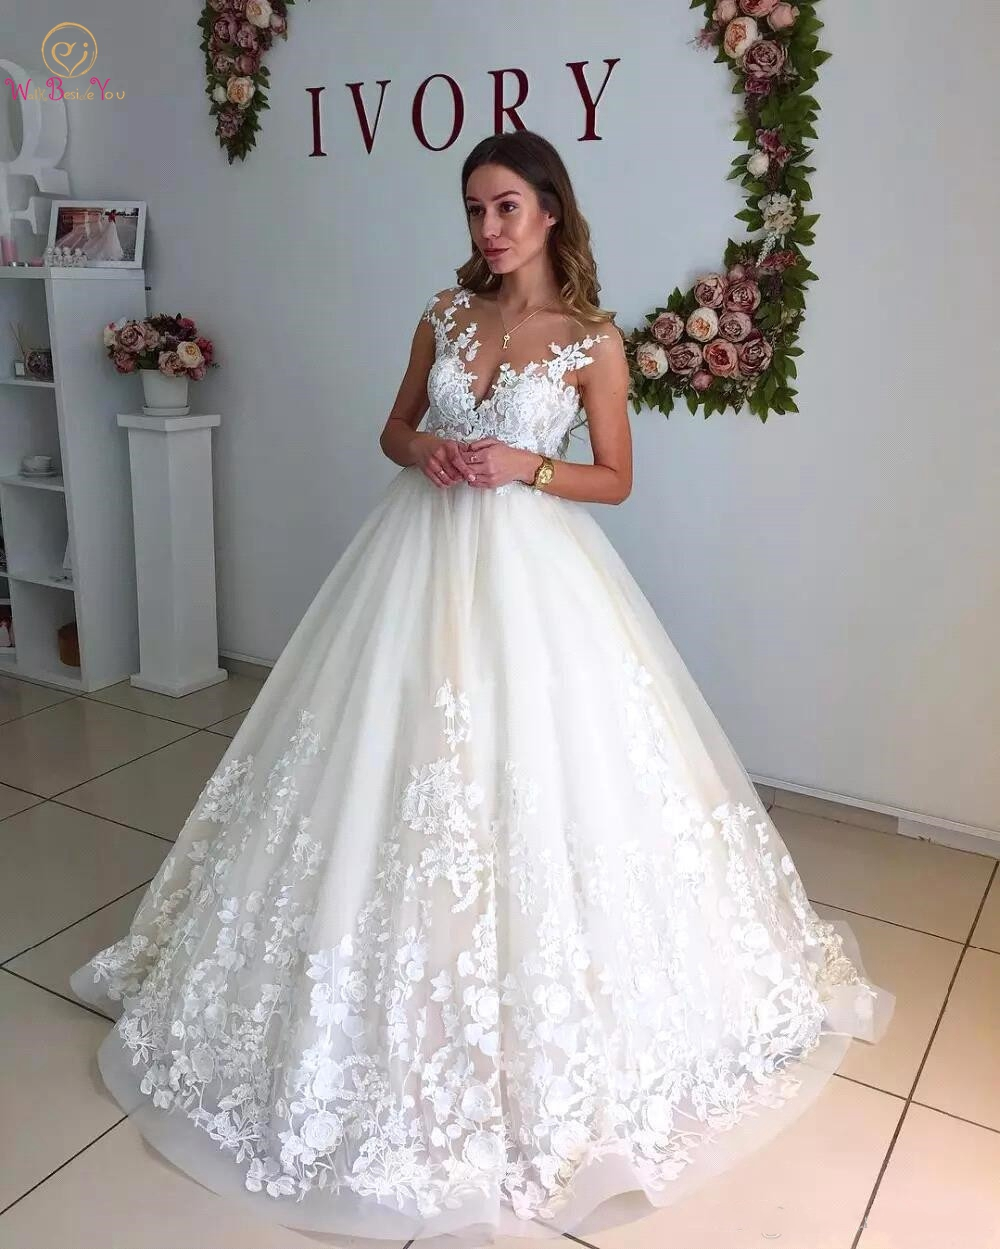 20 Pregnant Wedding Dresses Elegant Lace Sheer Neck Capped Sleeve  Maternity Backless Plus Size Customize Bridal Ball Gown